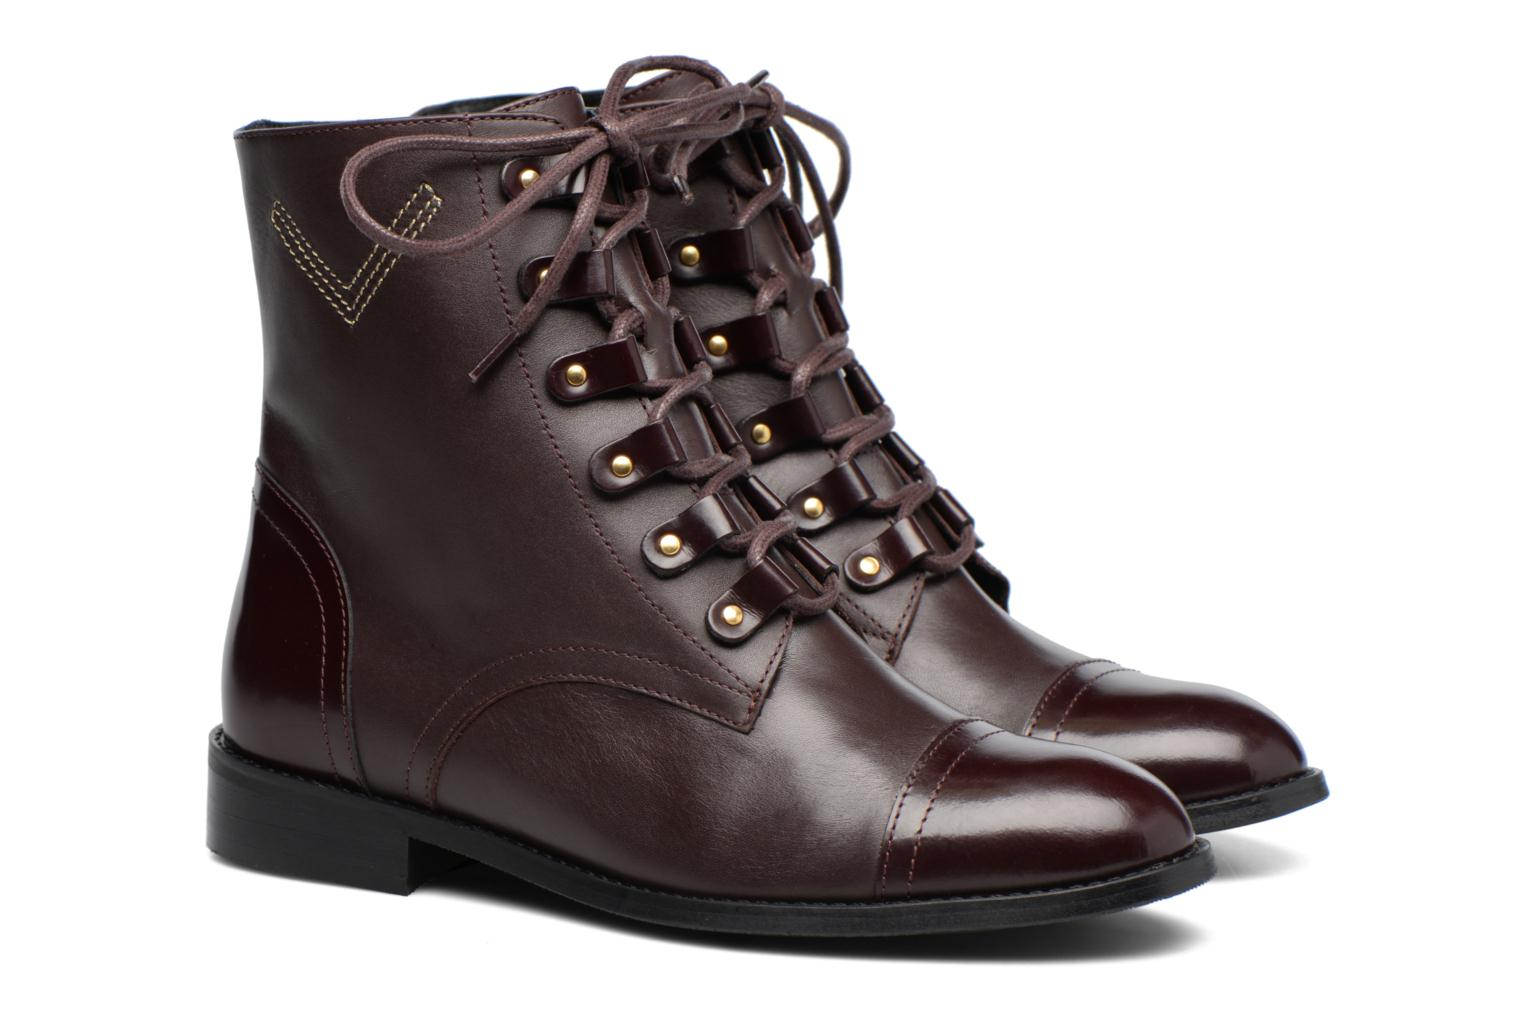 lisse Cuir Made 17 bordeaux by Camp SARENZA Boots qXwRqYr